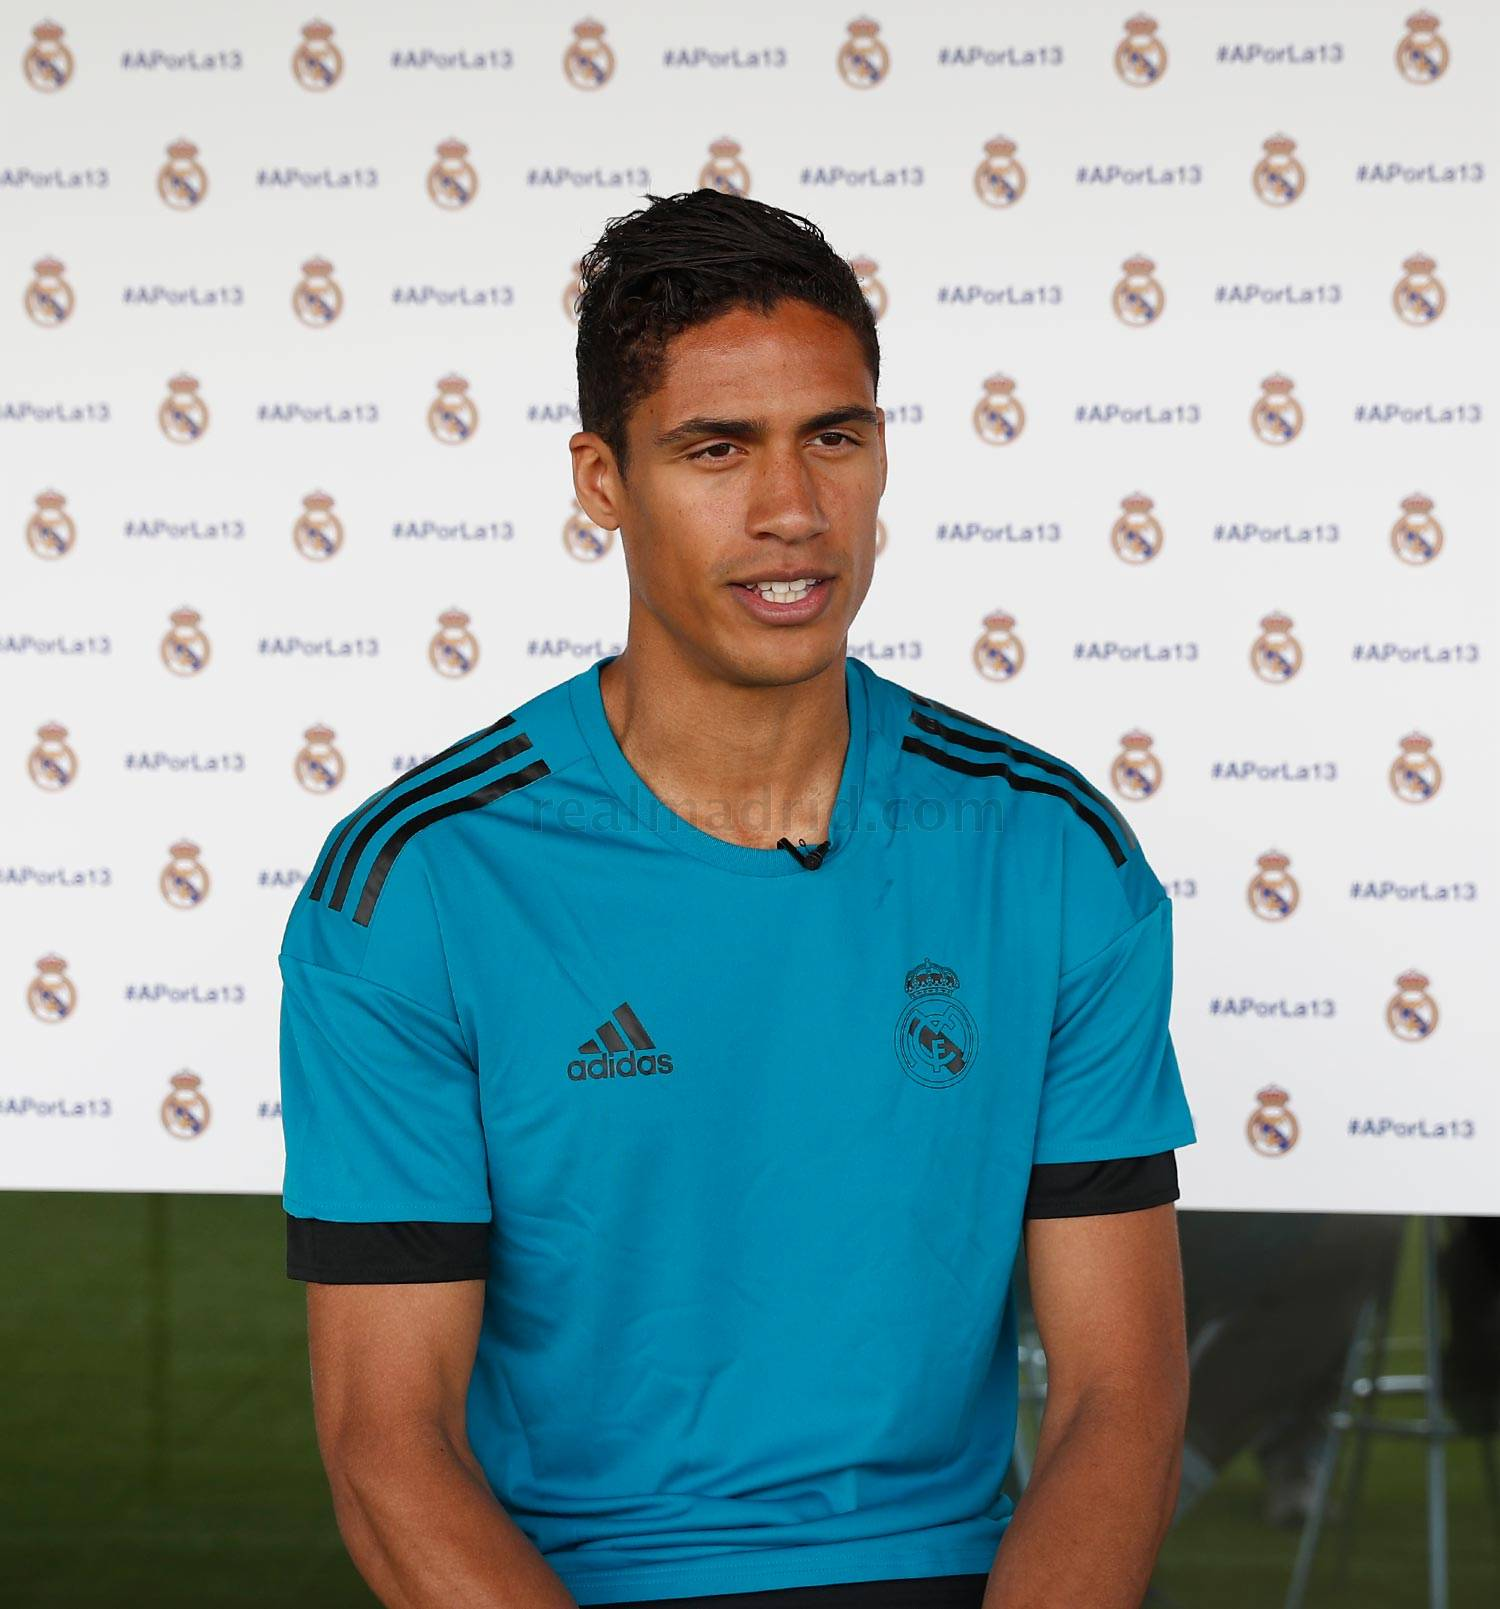 Real Madrid - Varane durante el Open Media Day 2018 - 22-05-2018